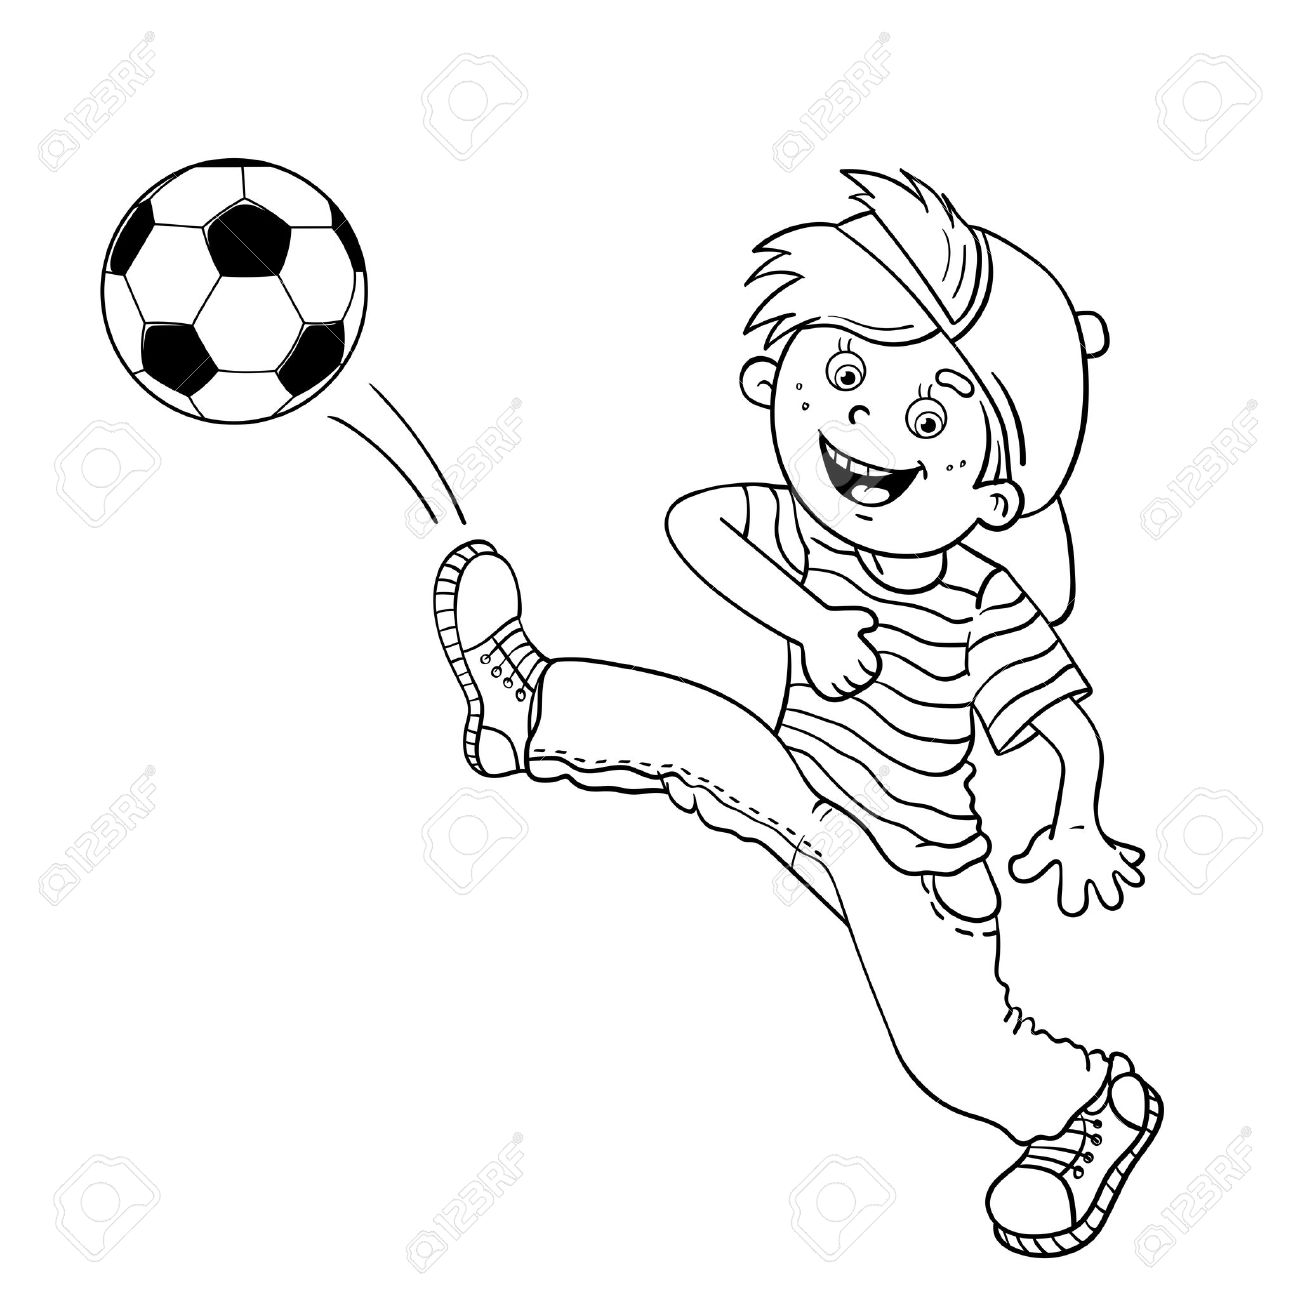 Coloring Page Outline Of A Cartoon Boy Kicking A Soccer Ball